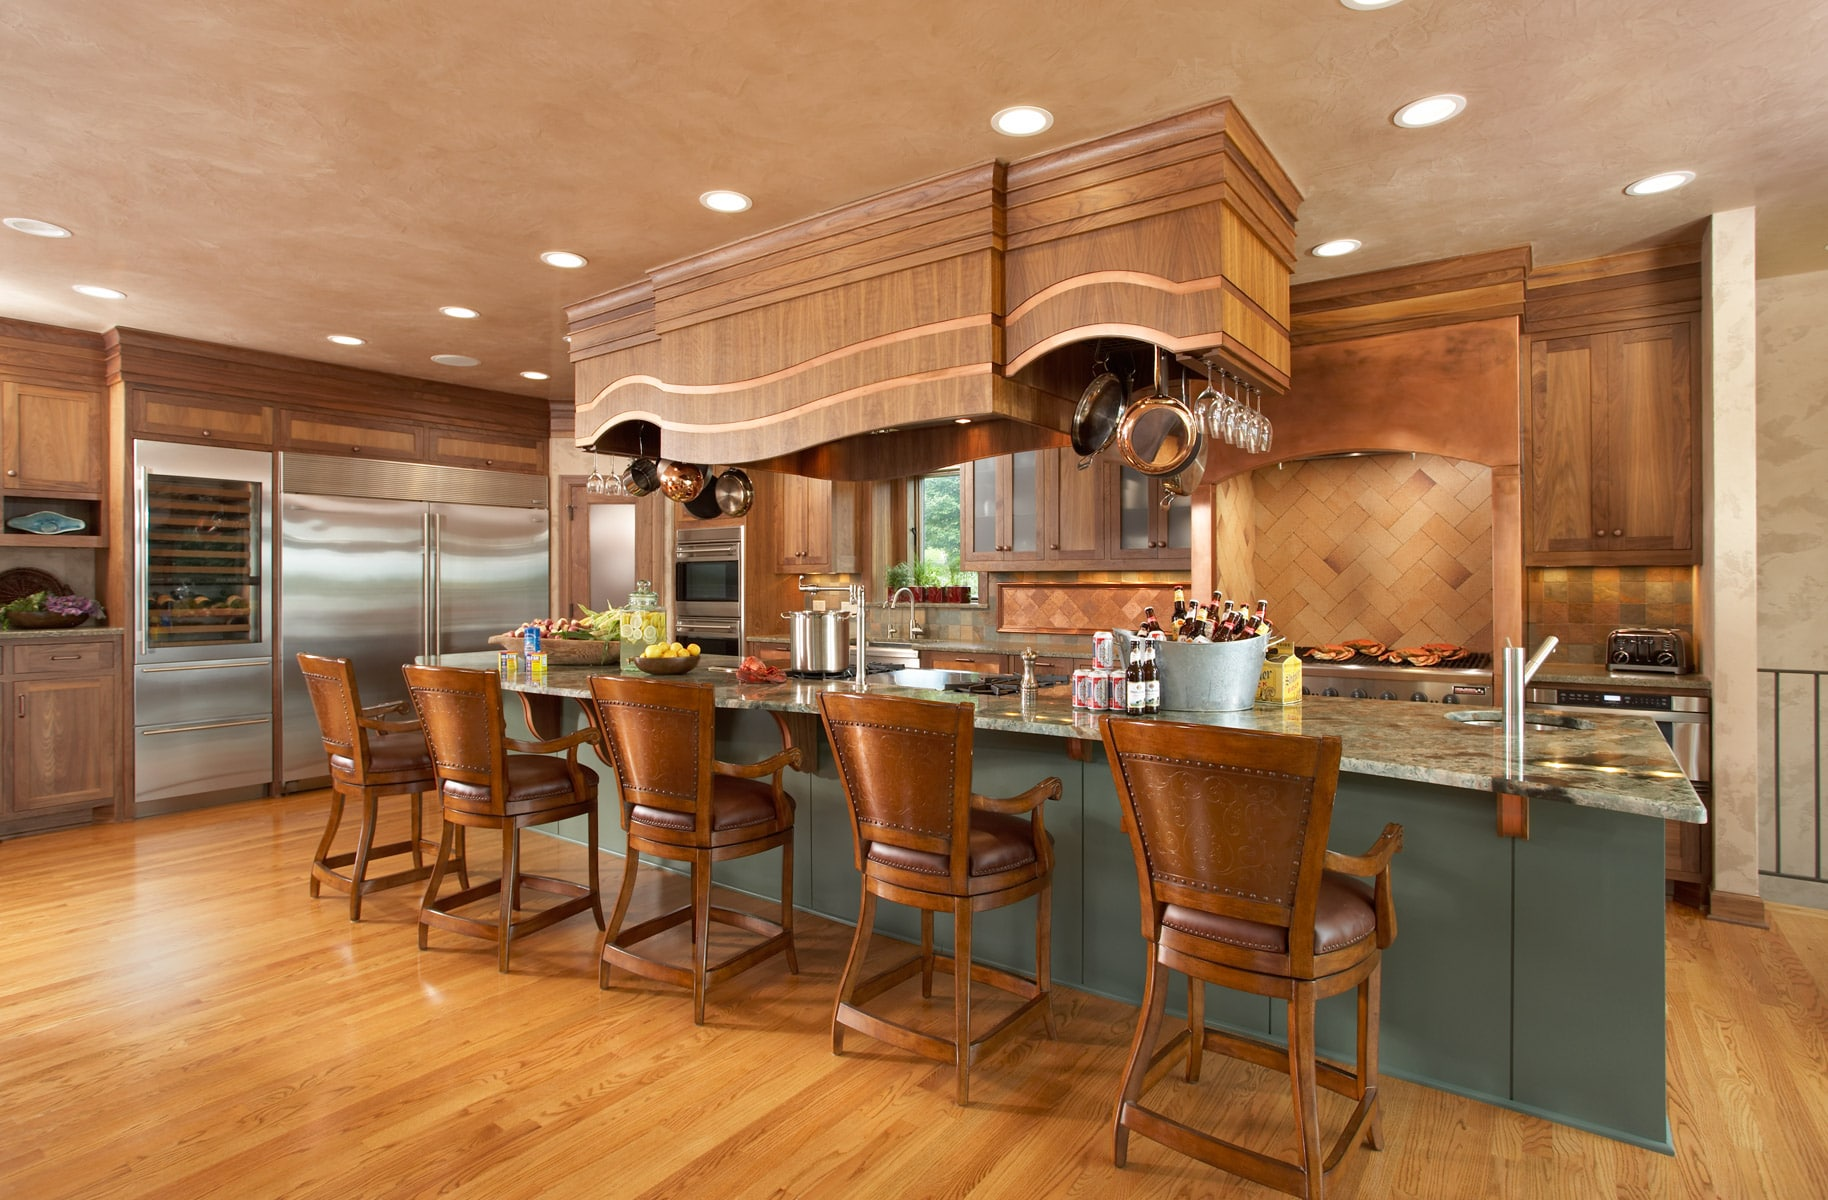 Kitchen Design Minneapolis Mn Gourmet Kitchen Interior Designers Minneapolis Lilu